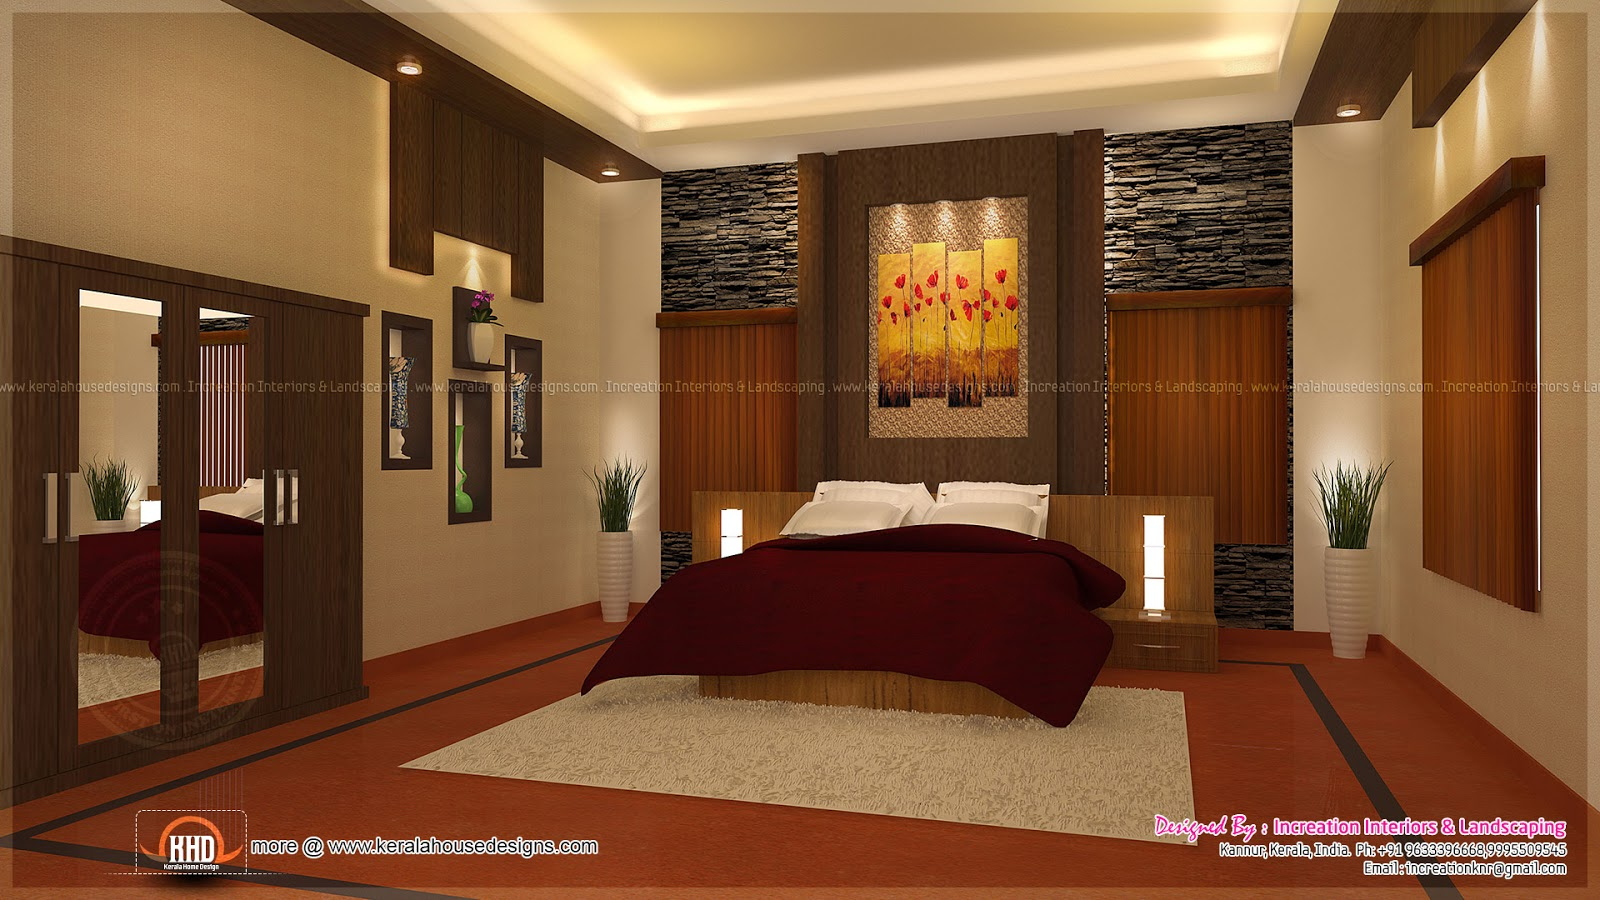 House interior ideas in 3d rendering kerala home design for Home interior design idea